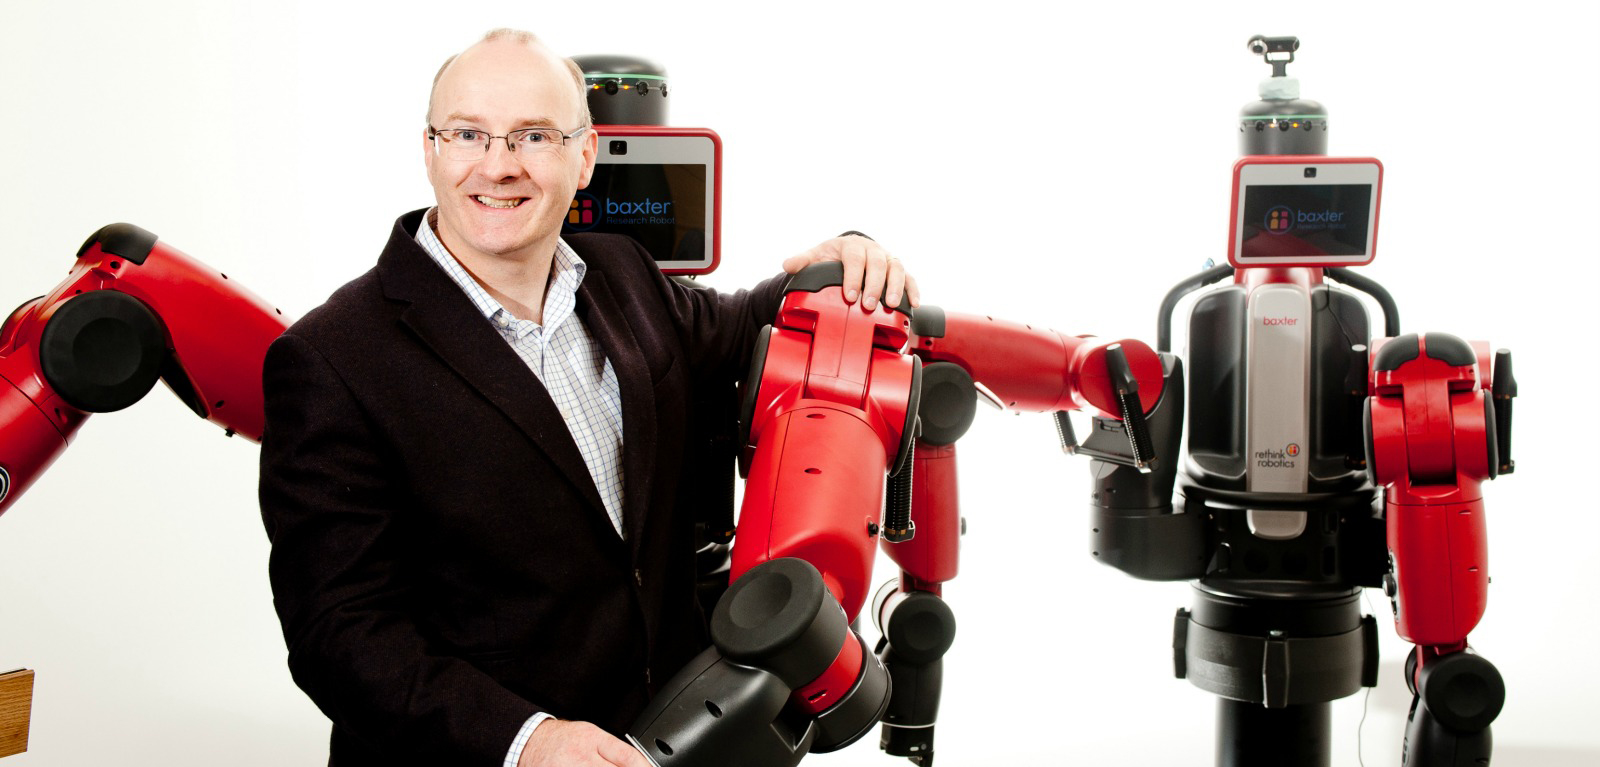 Prof. S.McL with two baxter robots